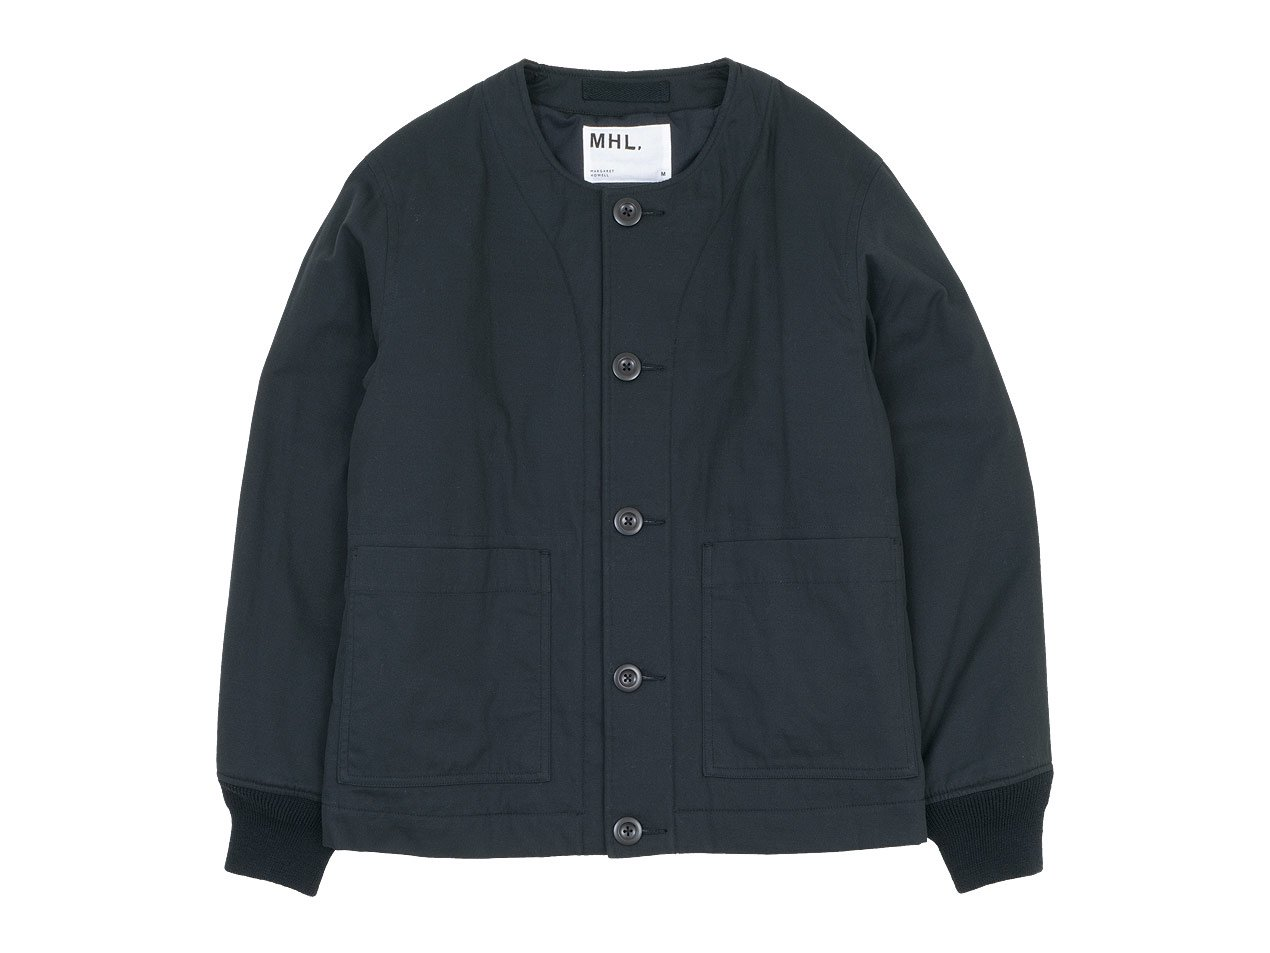 MHL. DRY COTTON TWILL INNER JACKET 010BLACK 〔メンズ〕